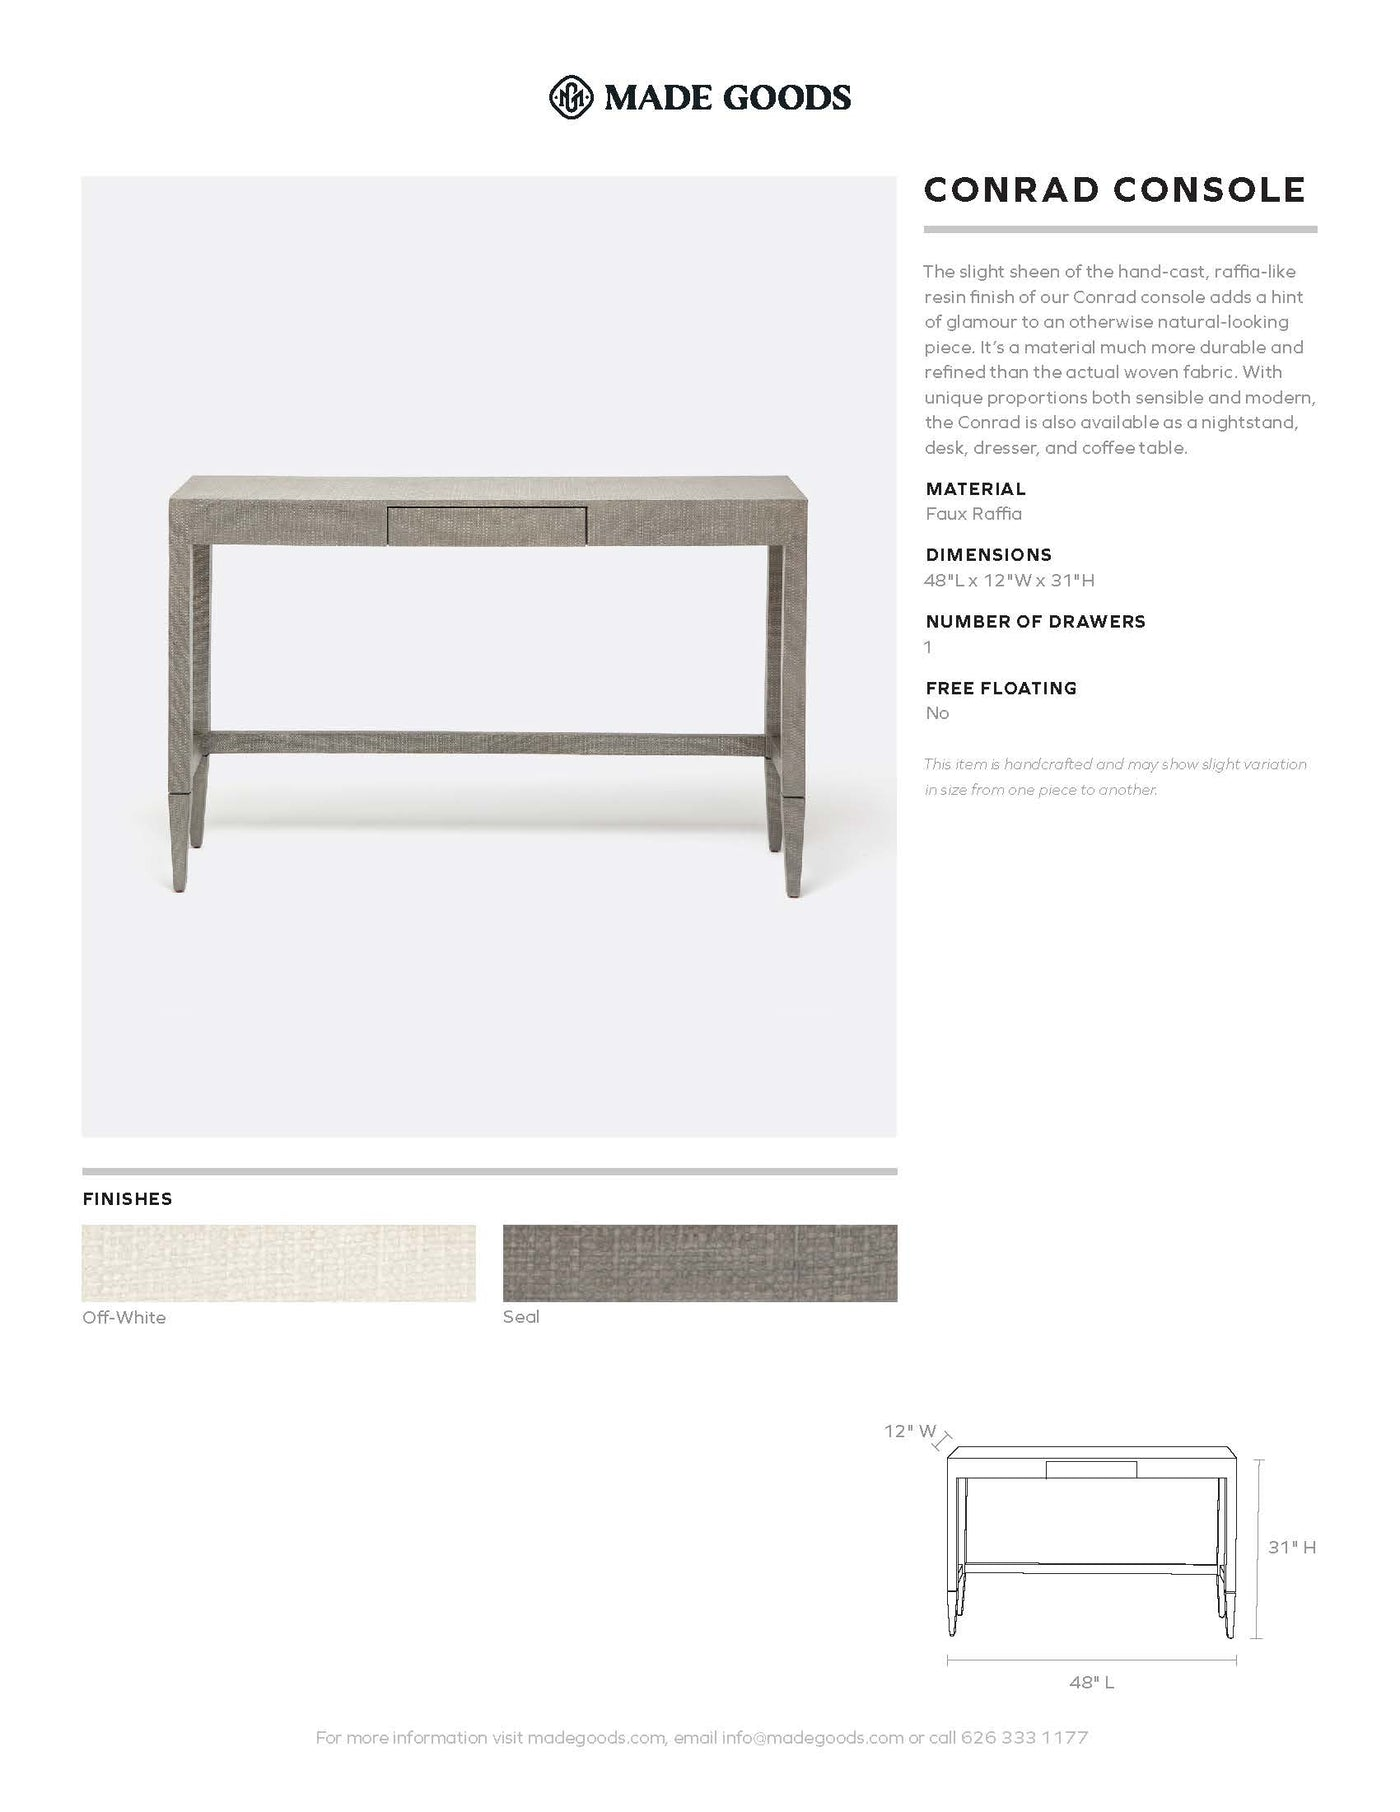 made goods conrad console table tearsheet